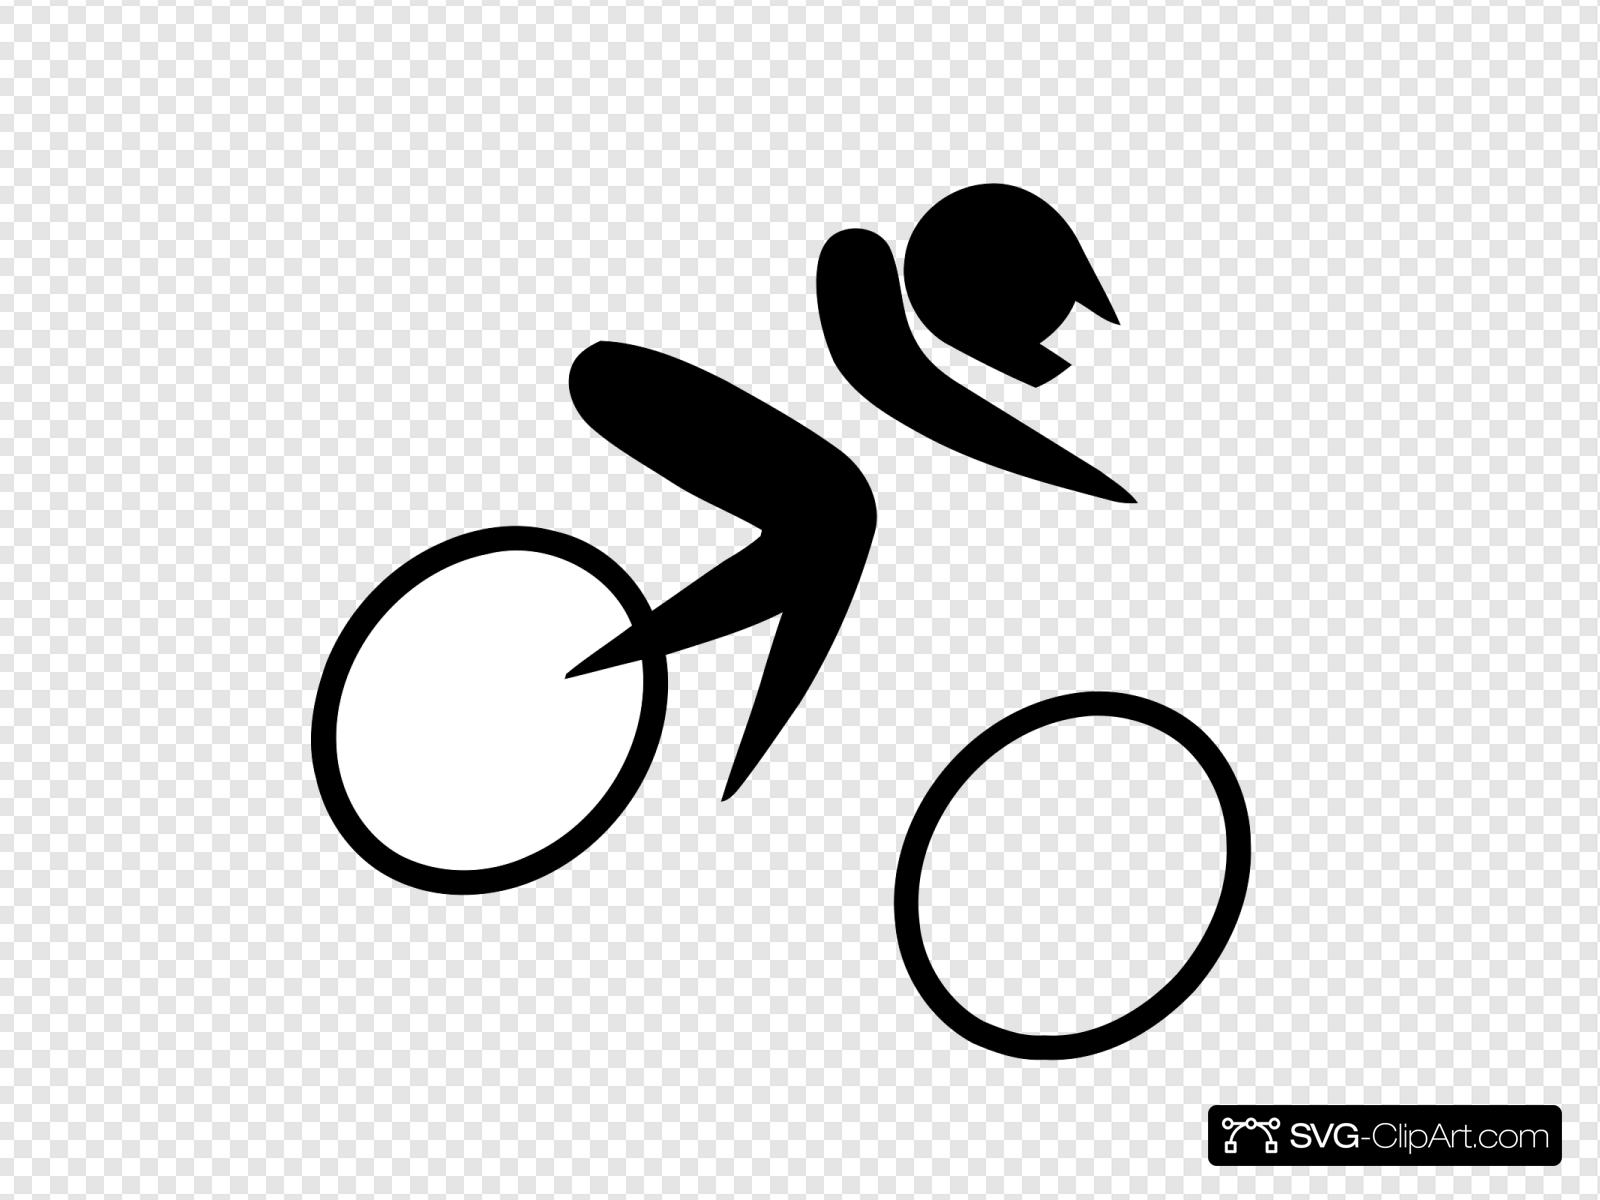 Olympic Sports Cycling Bmx Pictogram Svg Vector Olympic